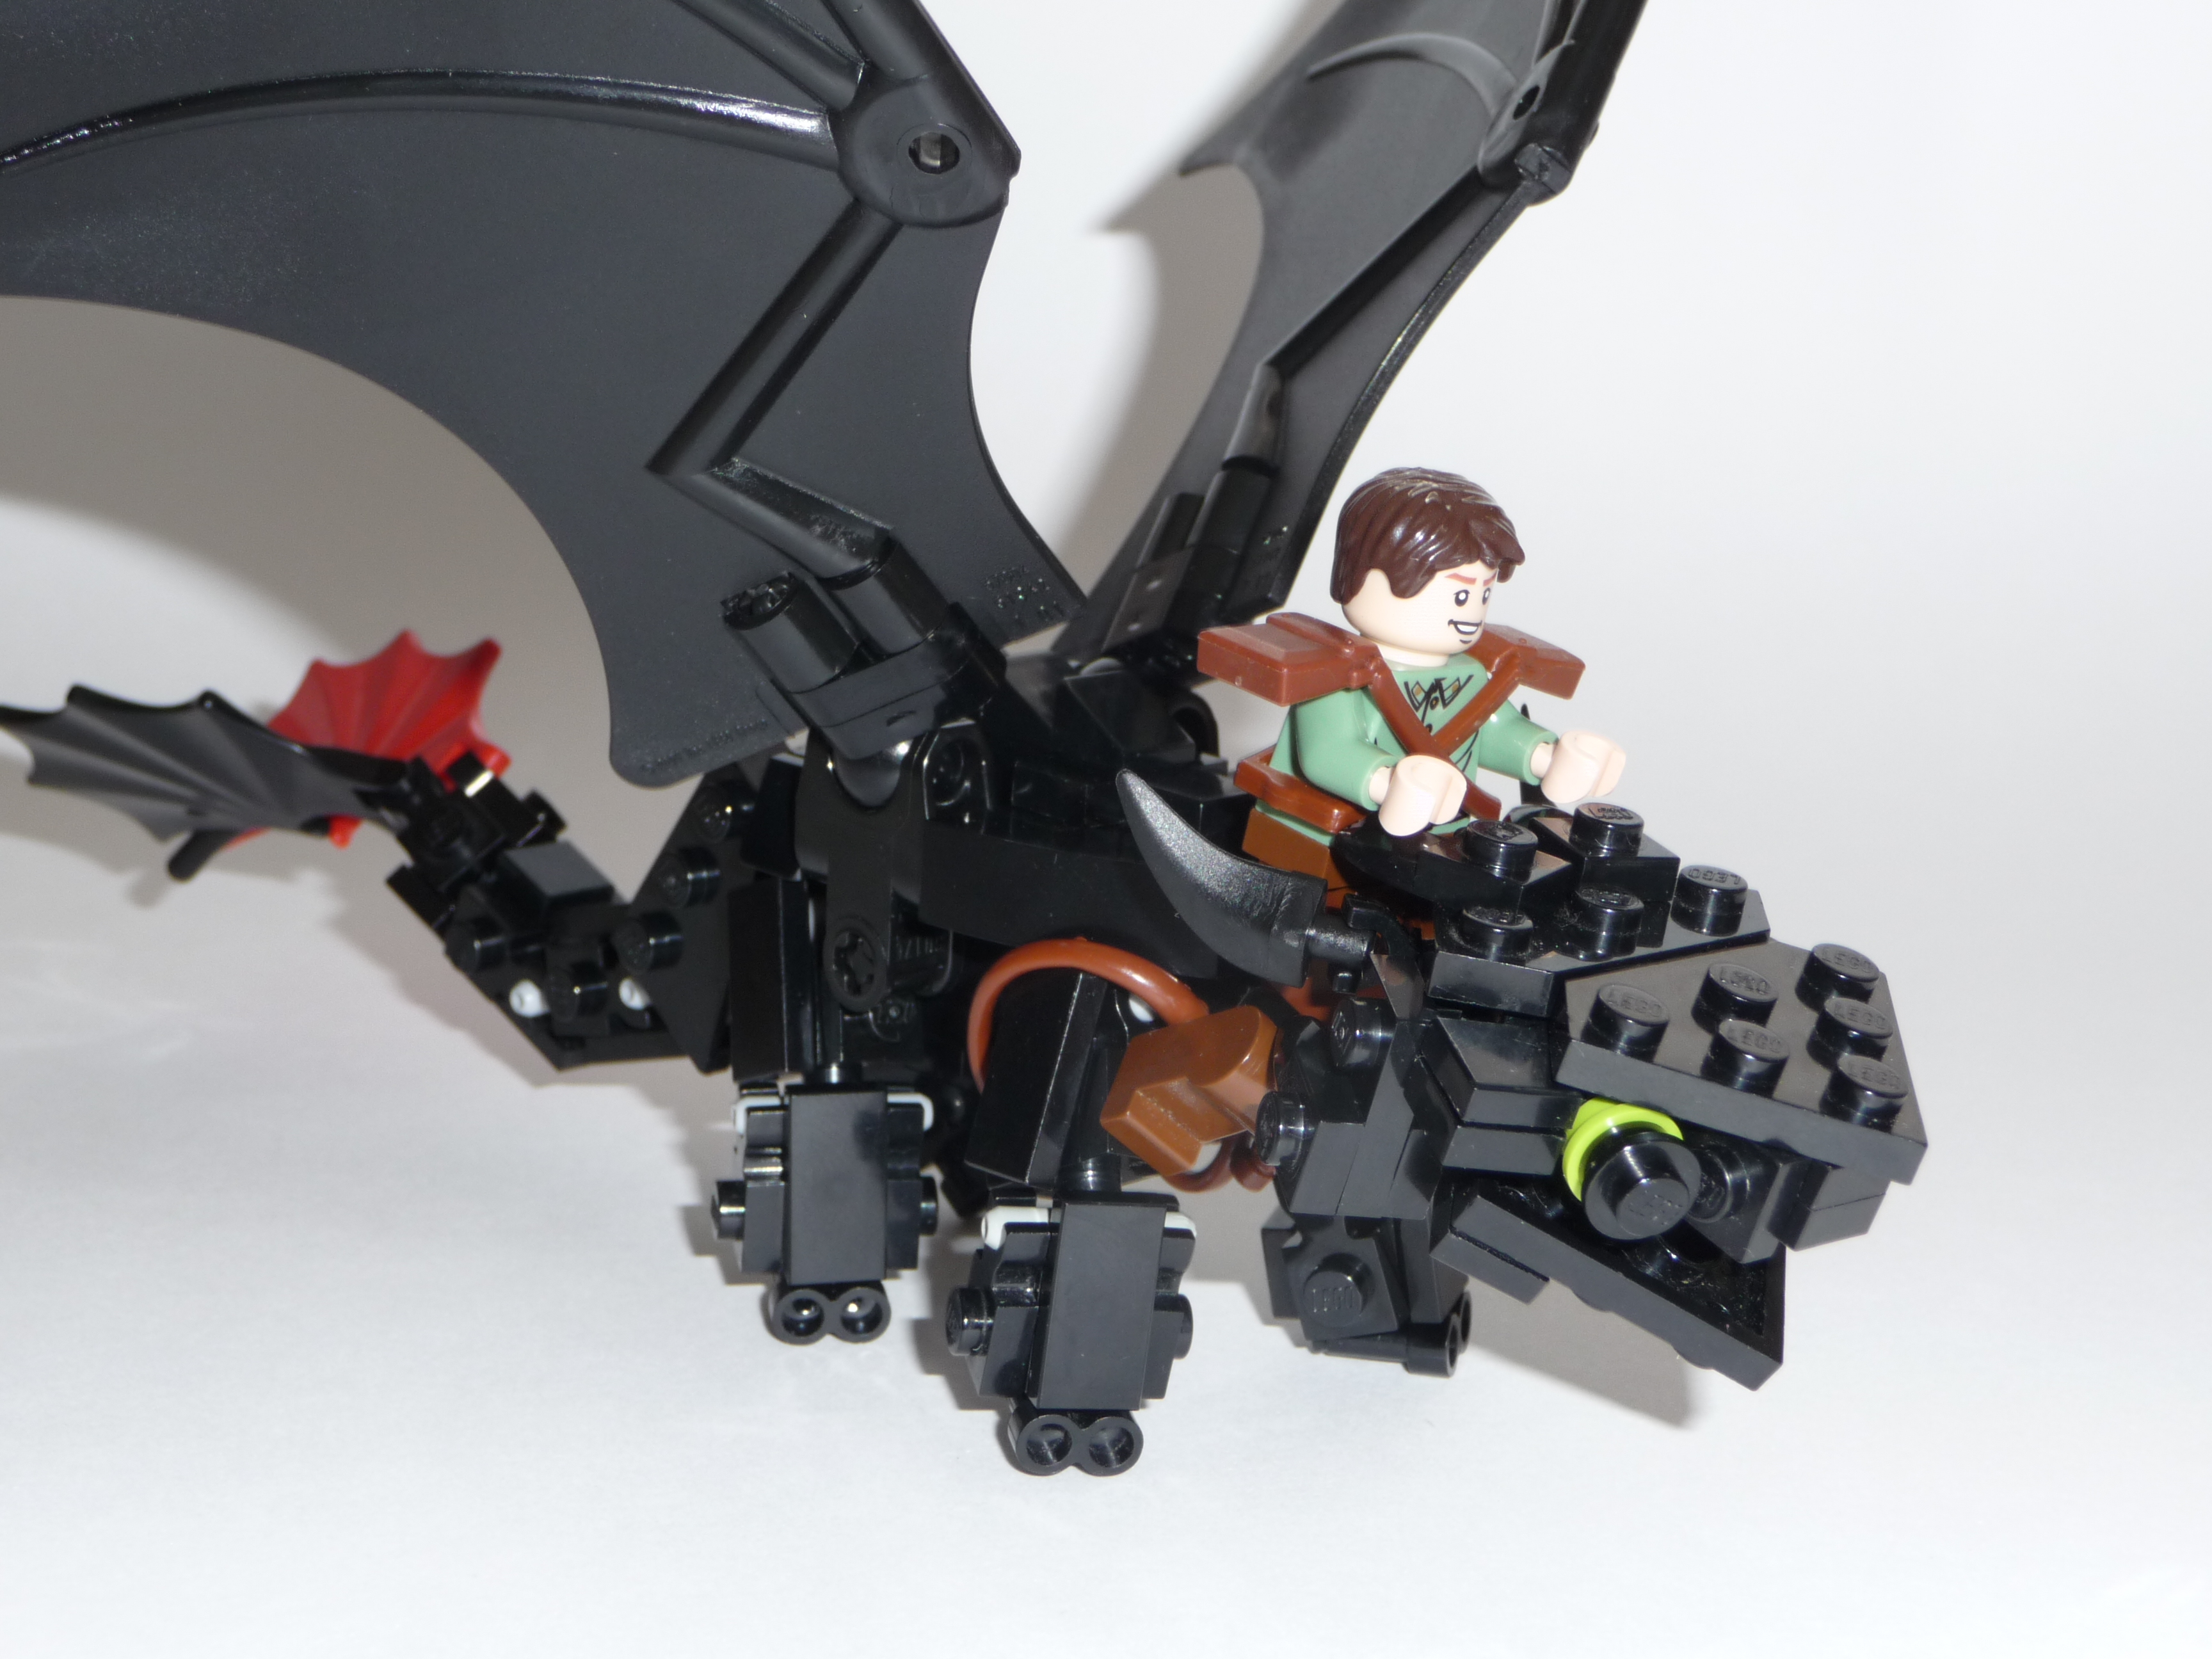 hiccup_and_toothless02.jpg